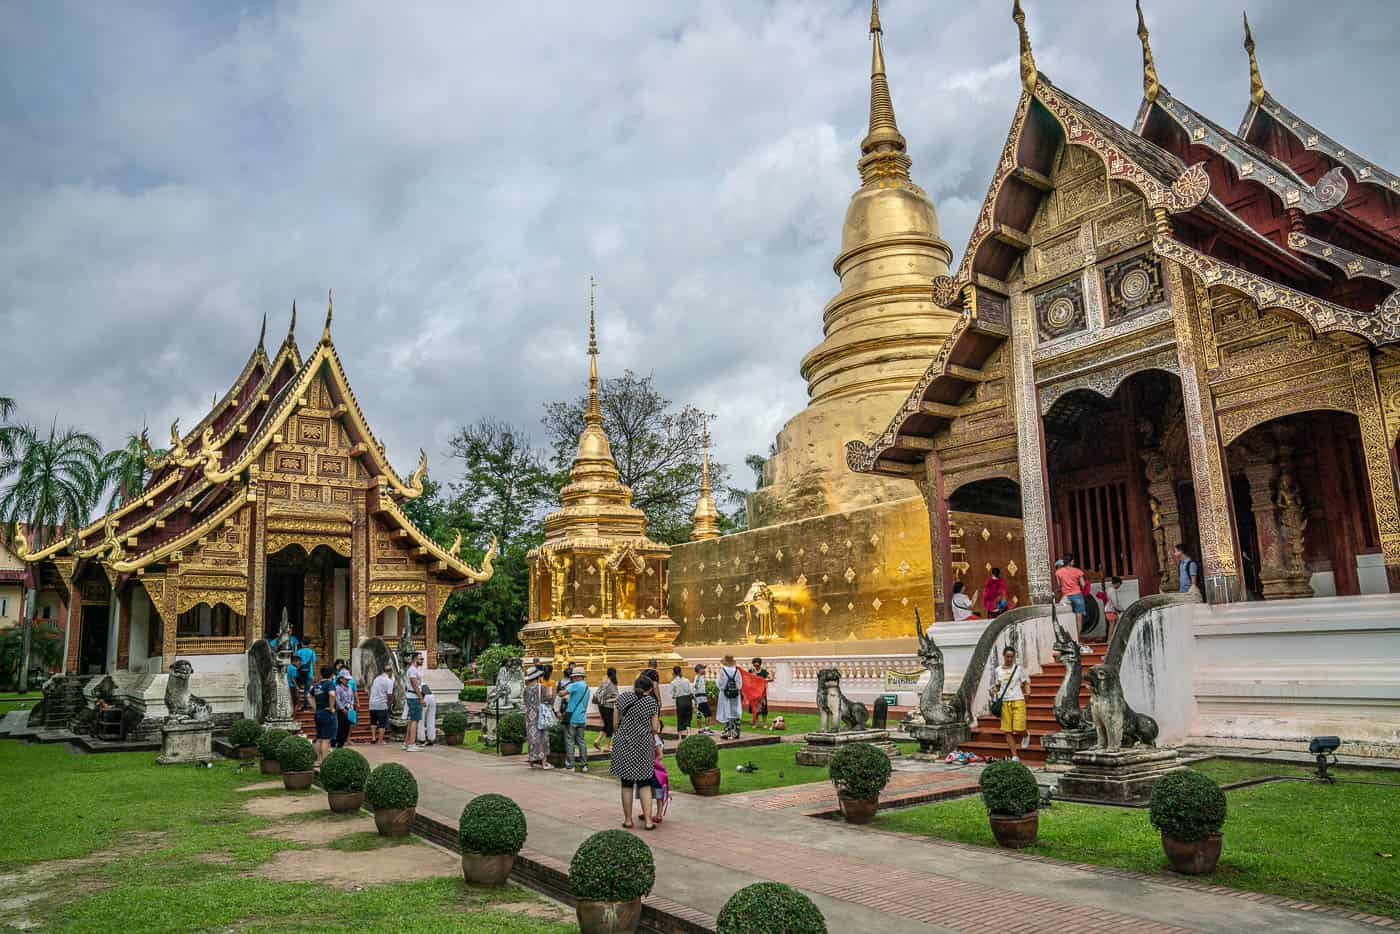 Wat Phra Singh temple chiang mai old town